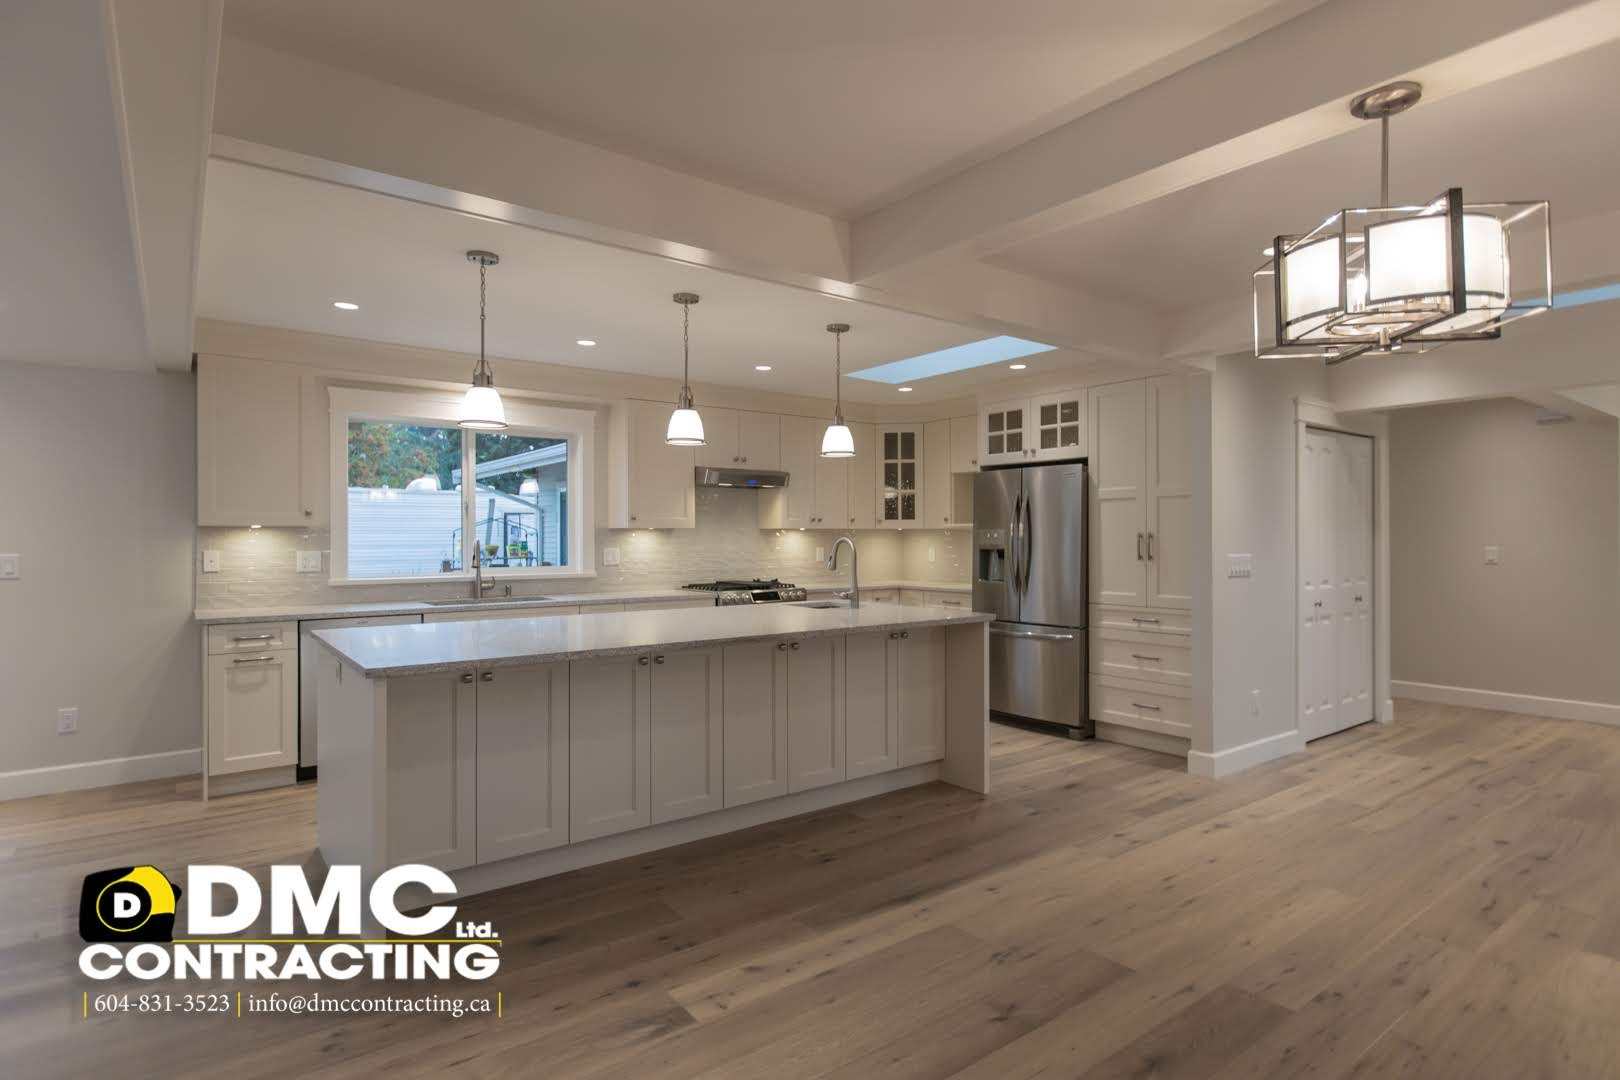 DMC Featured Kitchen